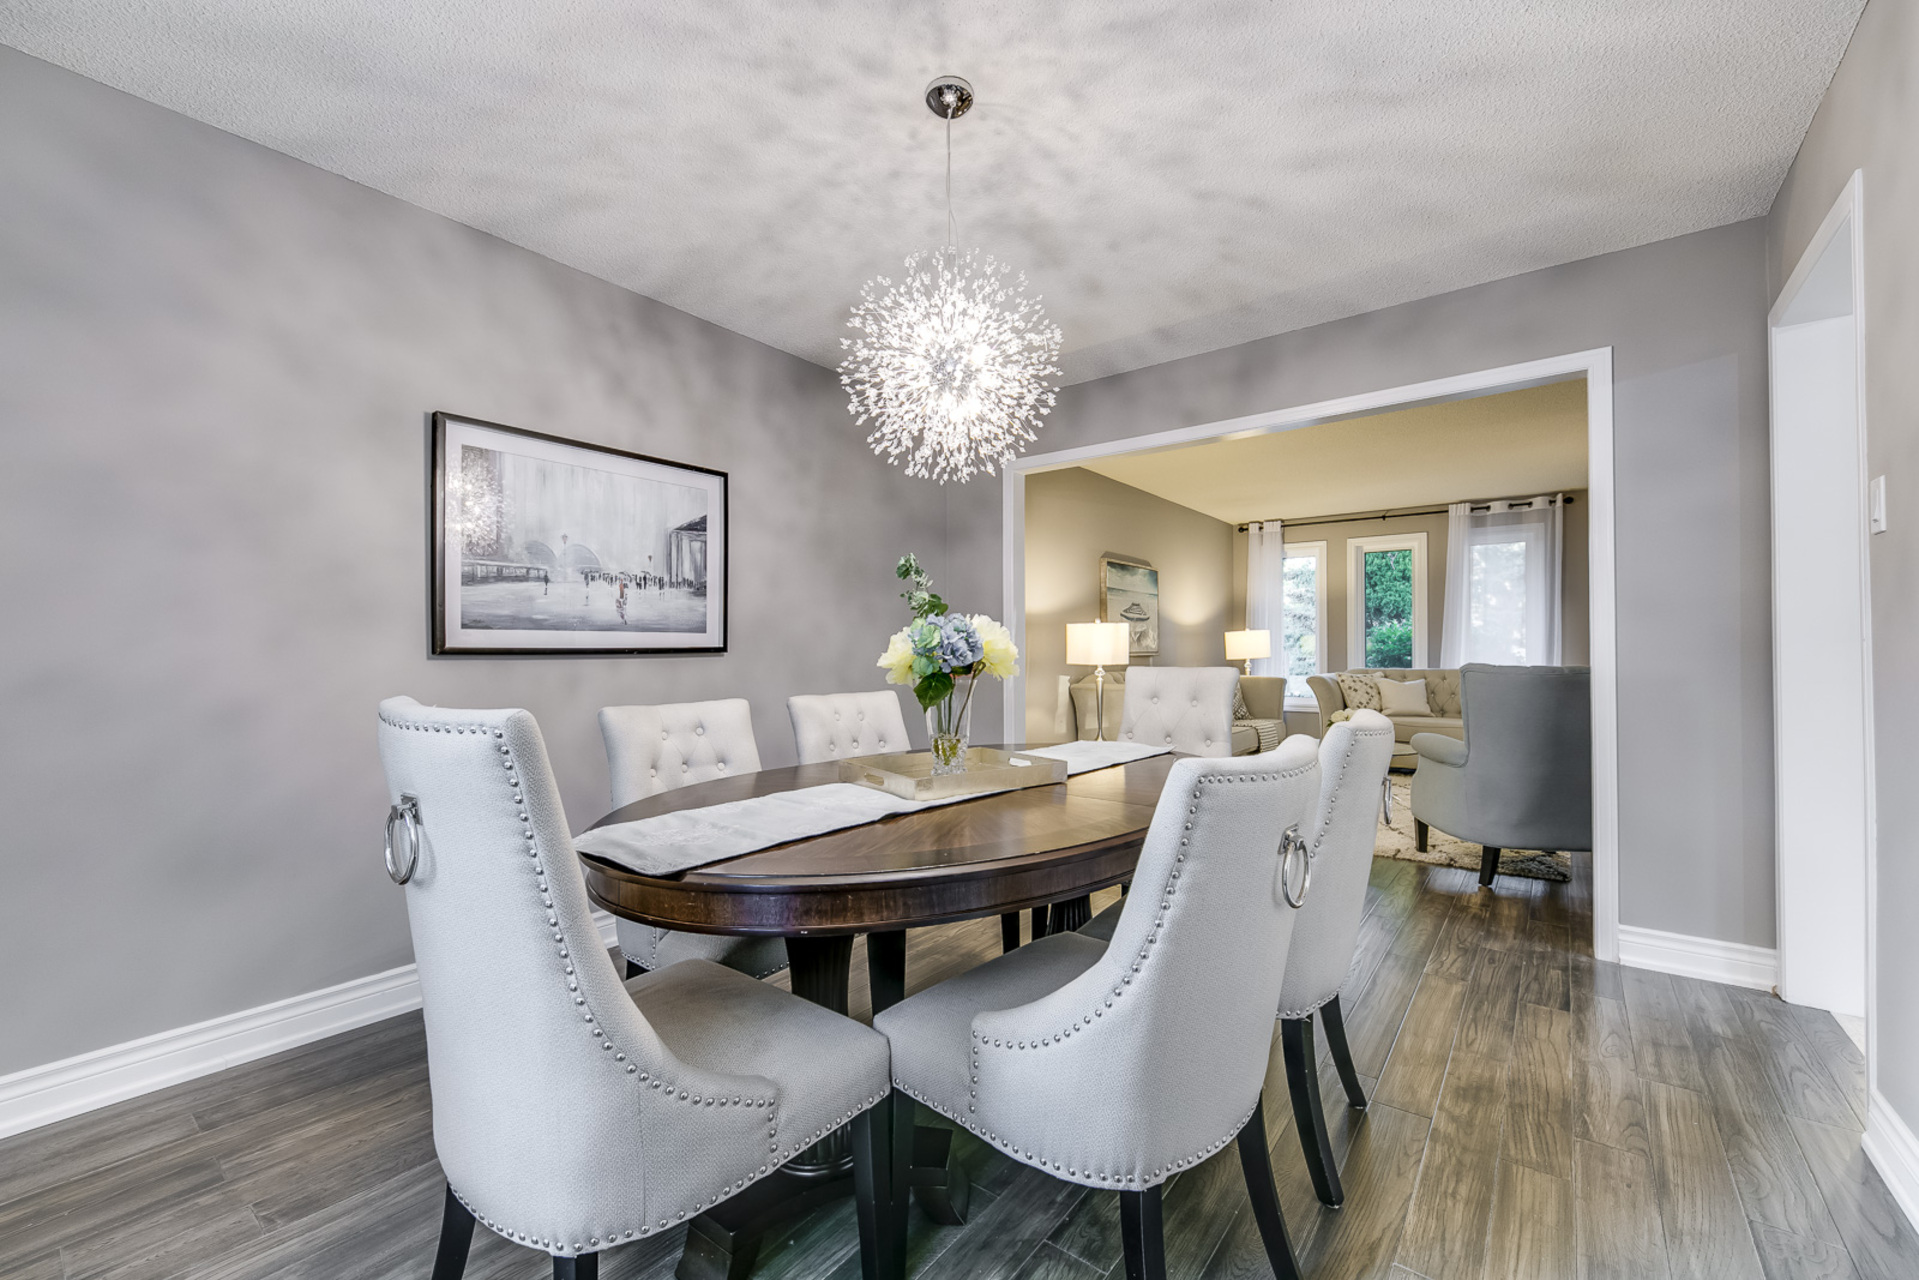 mls-28 at 4246 Wakefield Crescent, Creditview, Mississauga